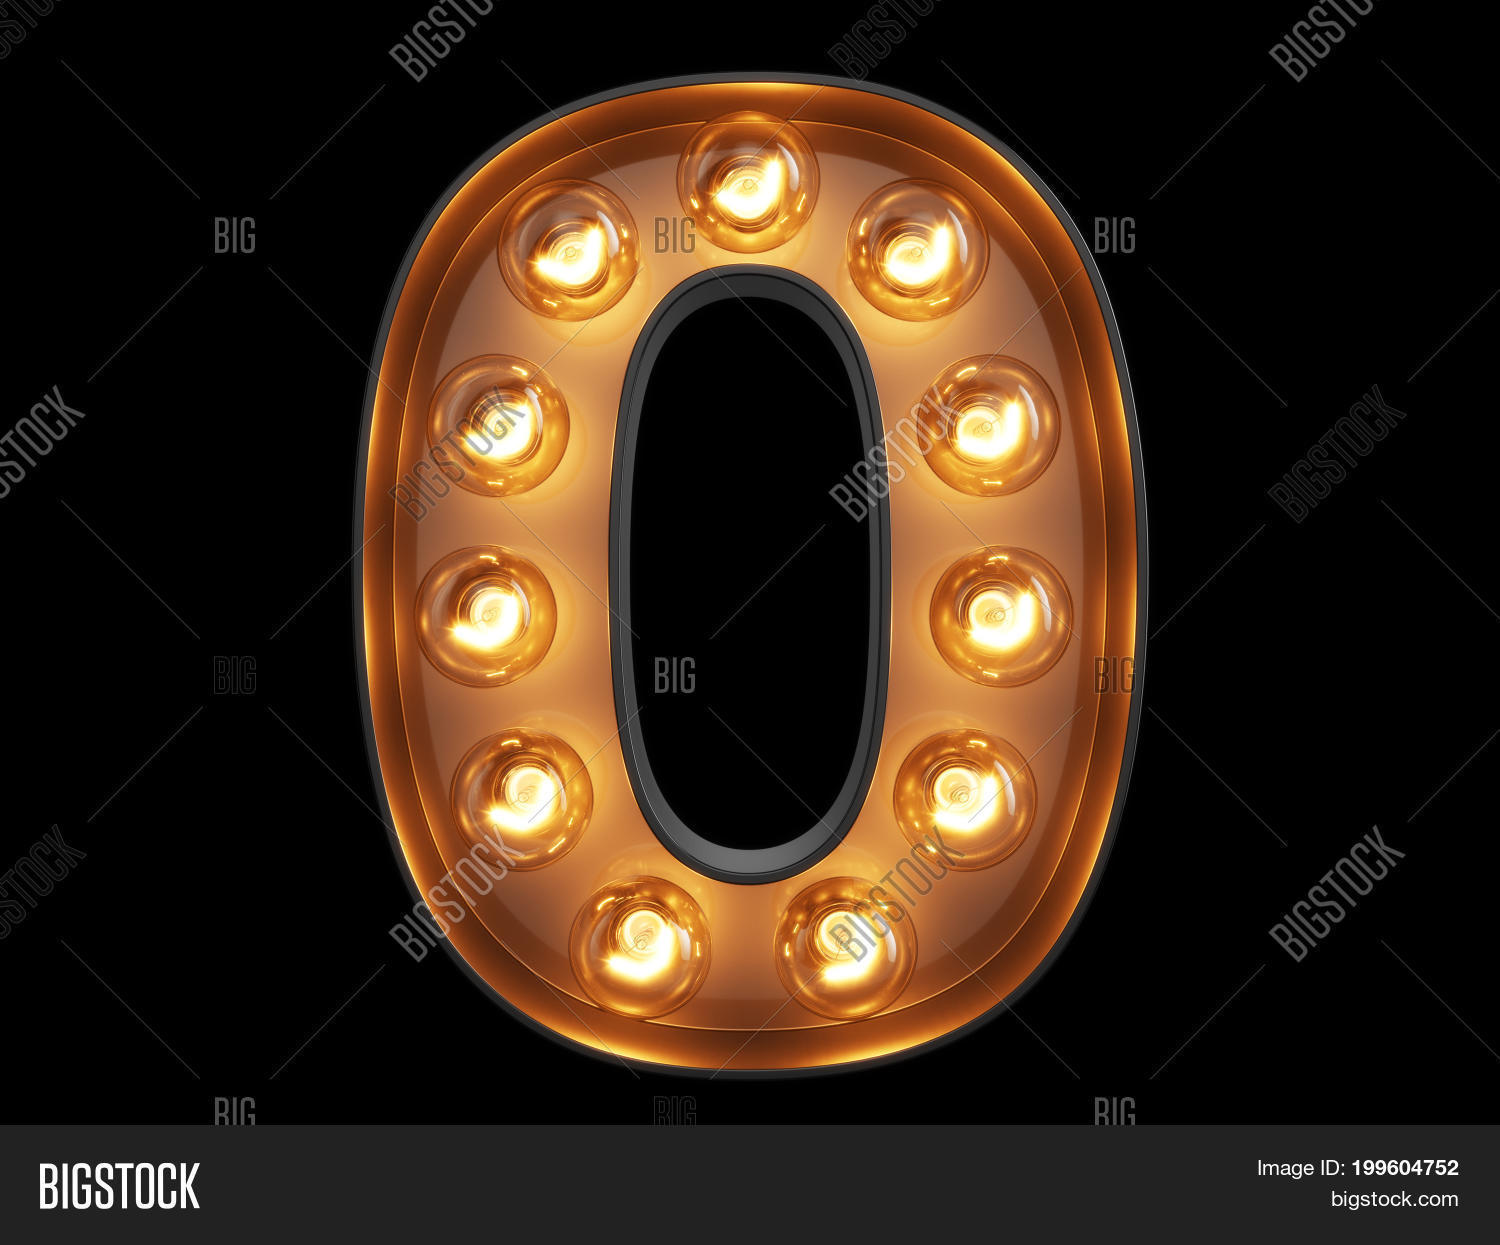 3d,abc,advertisement,advertising,alphabet,alphabetical,art,background,bright,bulb,celebration,collection,color,colorful,digit,effect,electric,electricity,element,entertainment,font,glow,glowing,golden,illuminated,lamp,letter,light,nightclub,nightlife,null,number,orange,realistic,render,retro,set,shine,shiny,show,sign,symbol,text,type,typeface,typeset,typography,zero